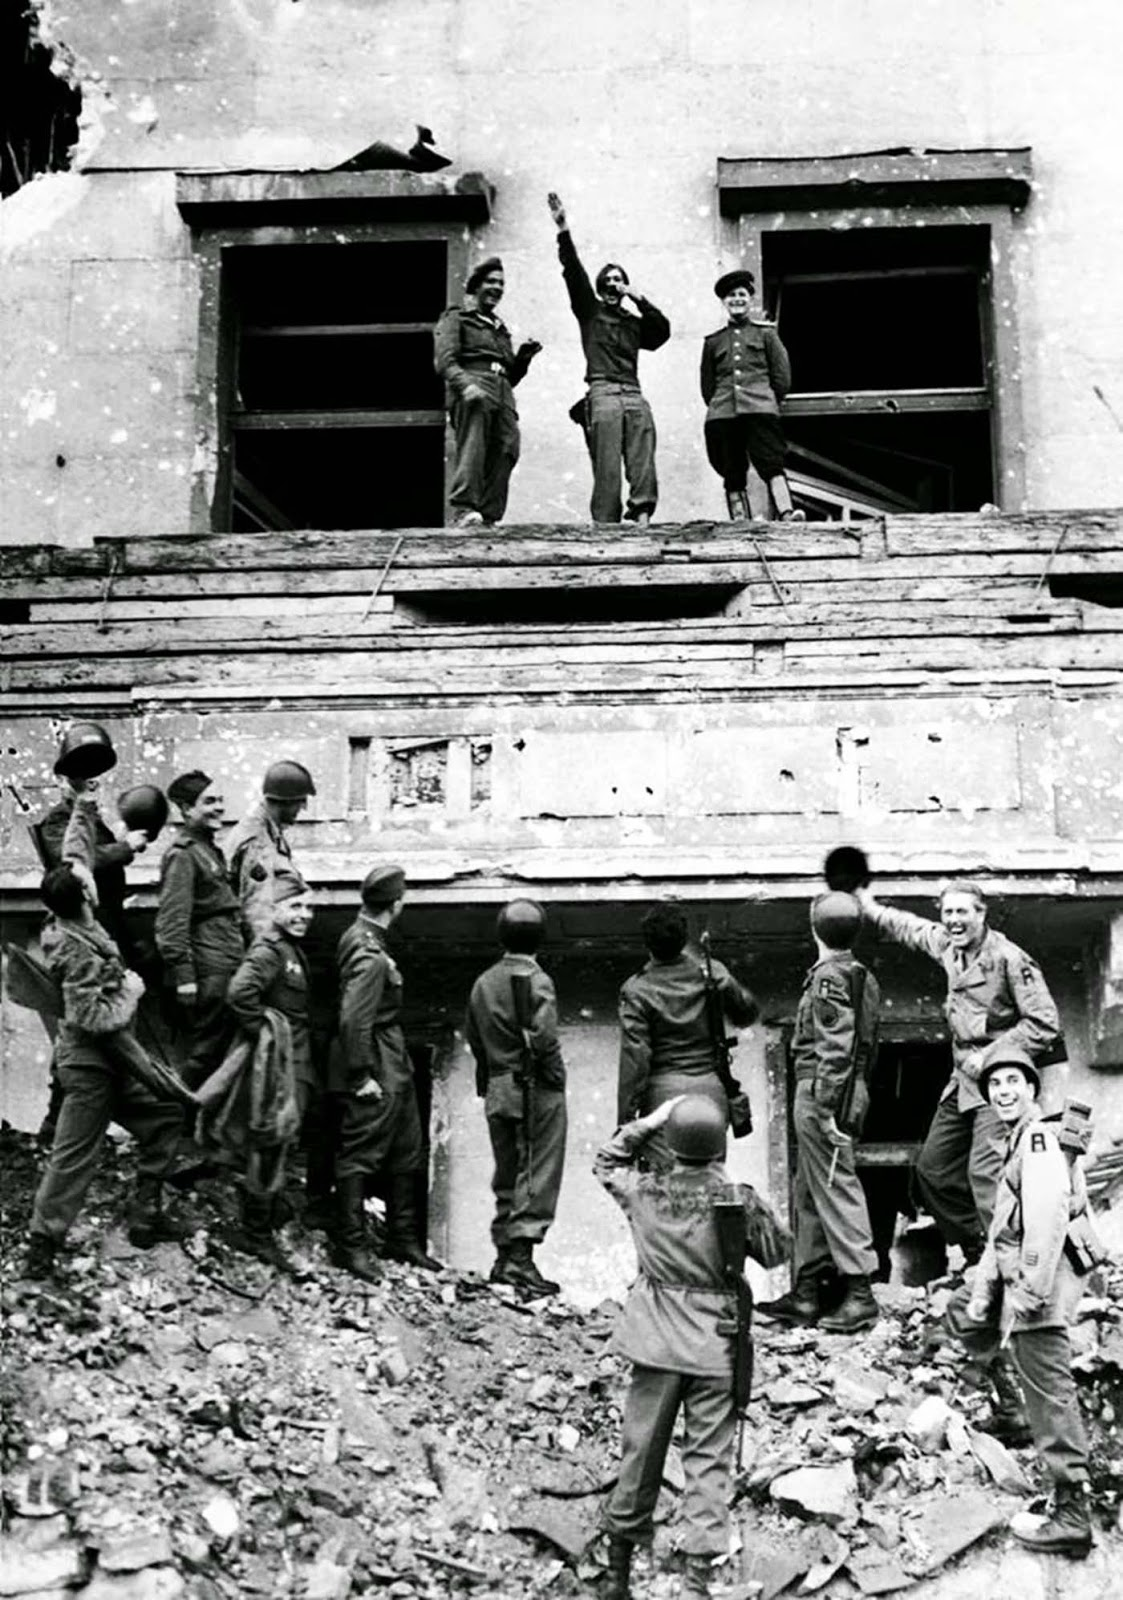 Soldiers of the British, American and Russian armies mimic and mock Adolf Hitler and his ideas on Hitler's famous balcony at the Chancellery in conquered Berlin.